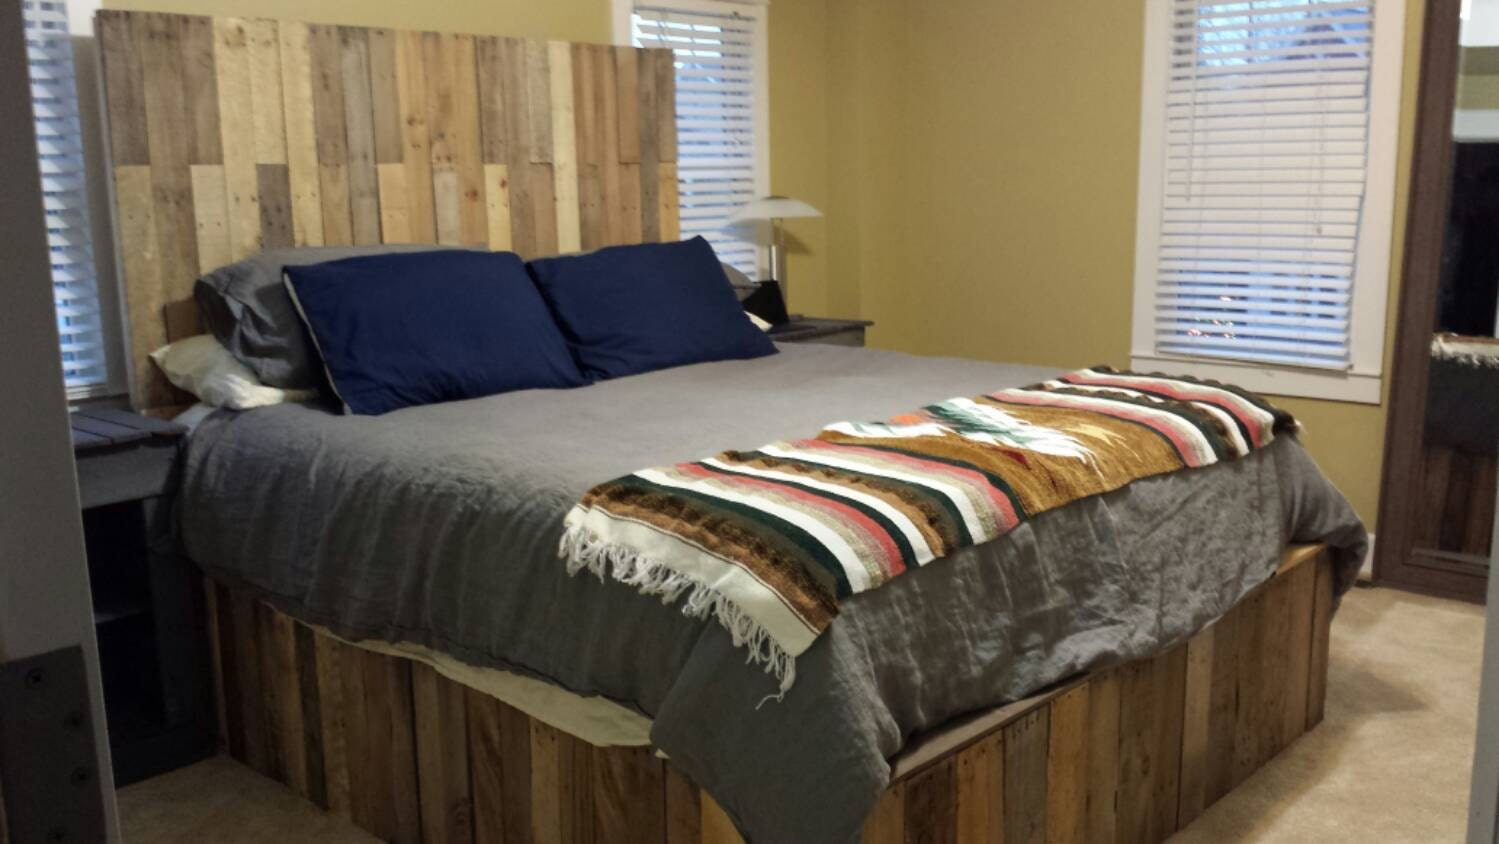 Pallet bed frame and headboard by MuffledShop on Etsy